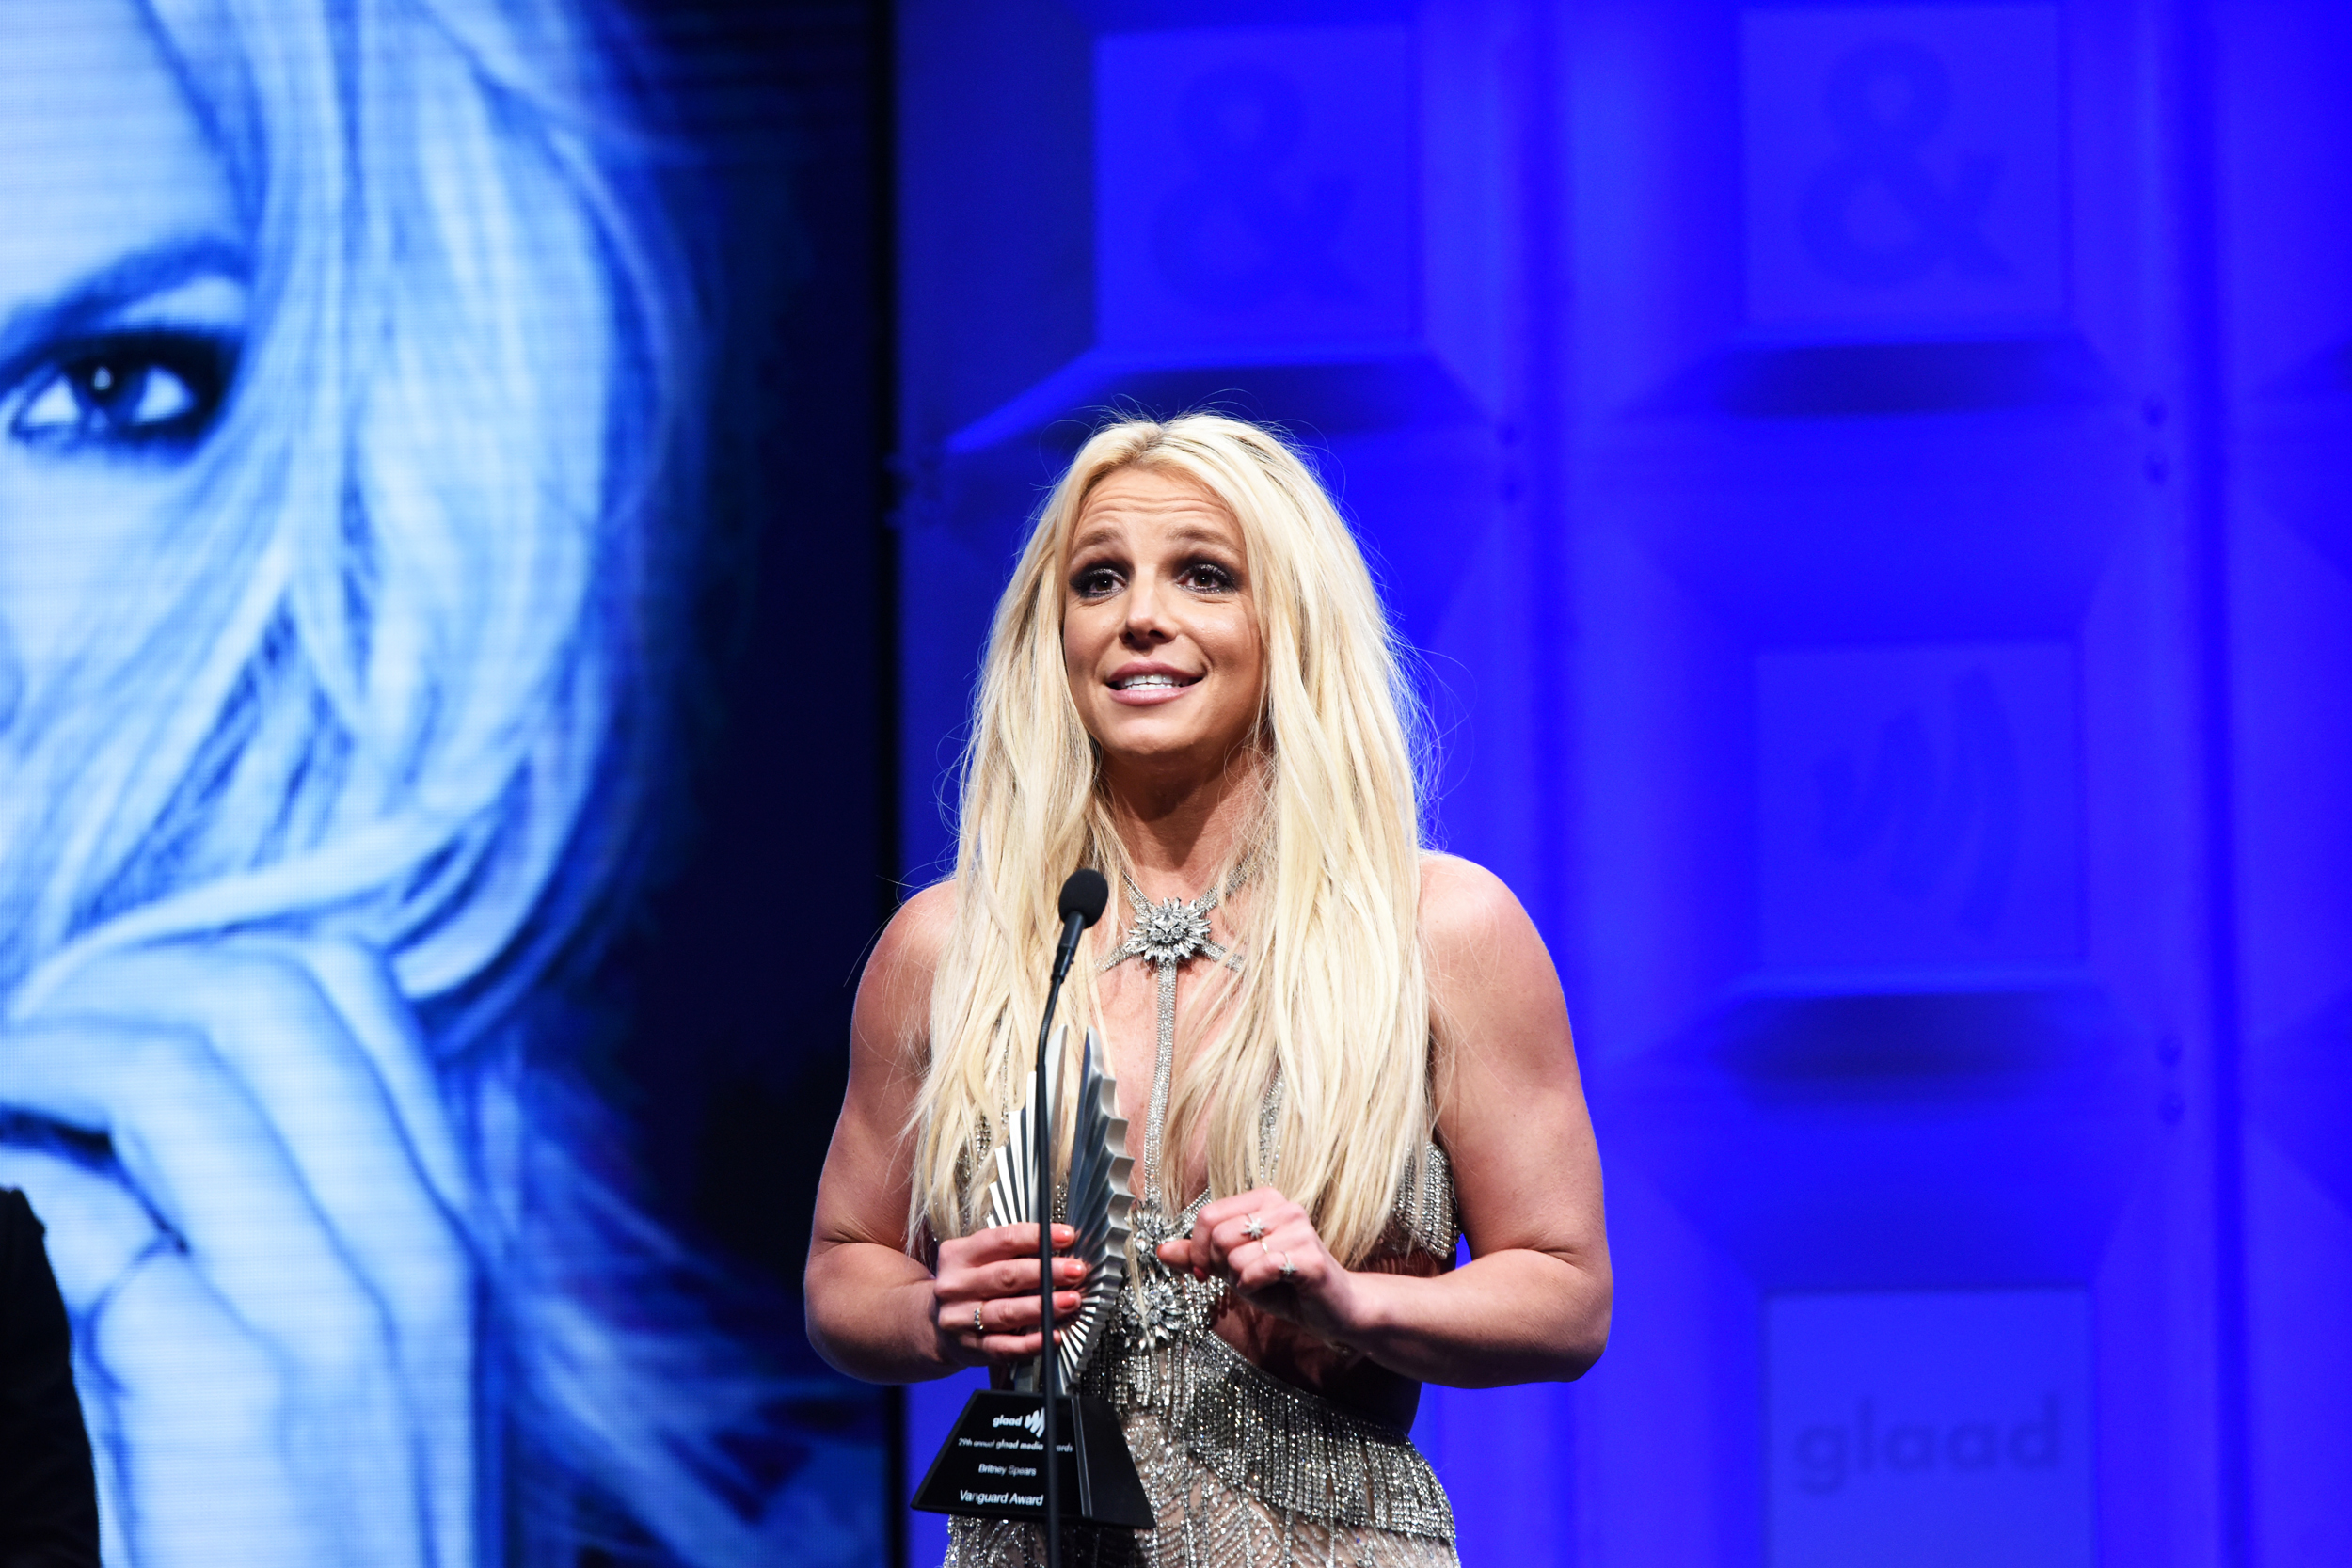 Britney Spears says she's healing after father is suspended as conservator